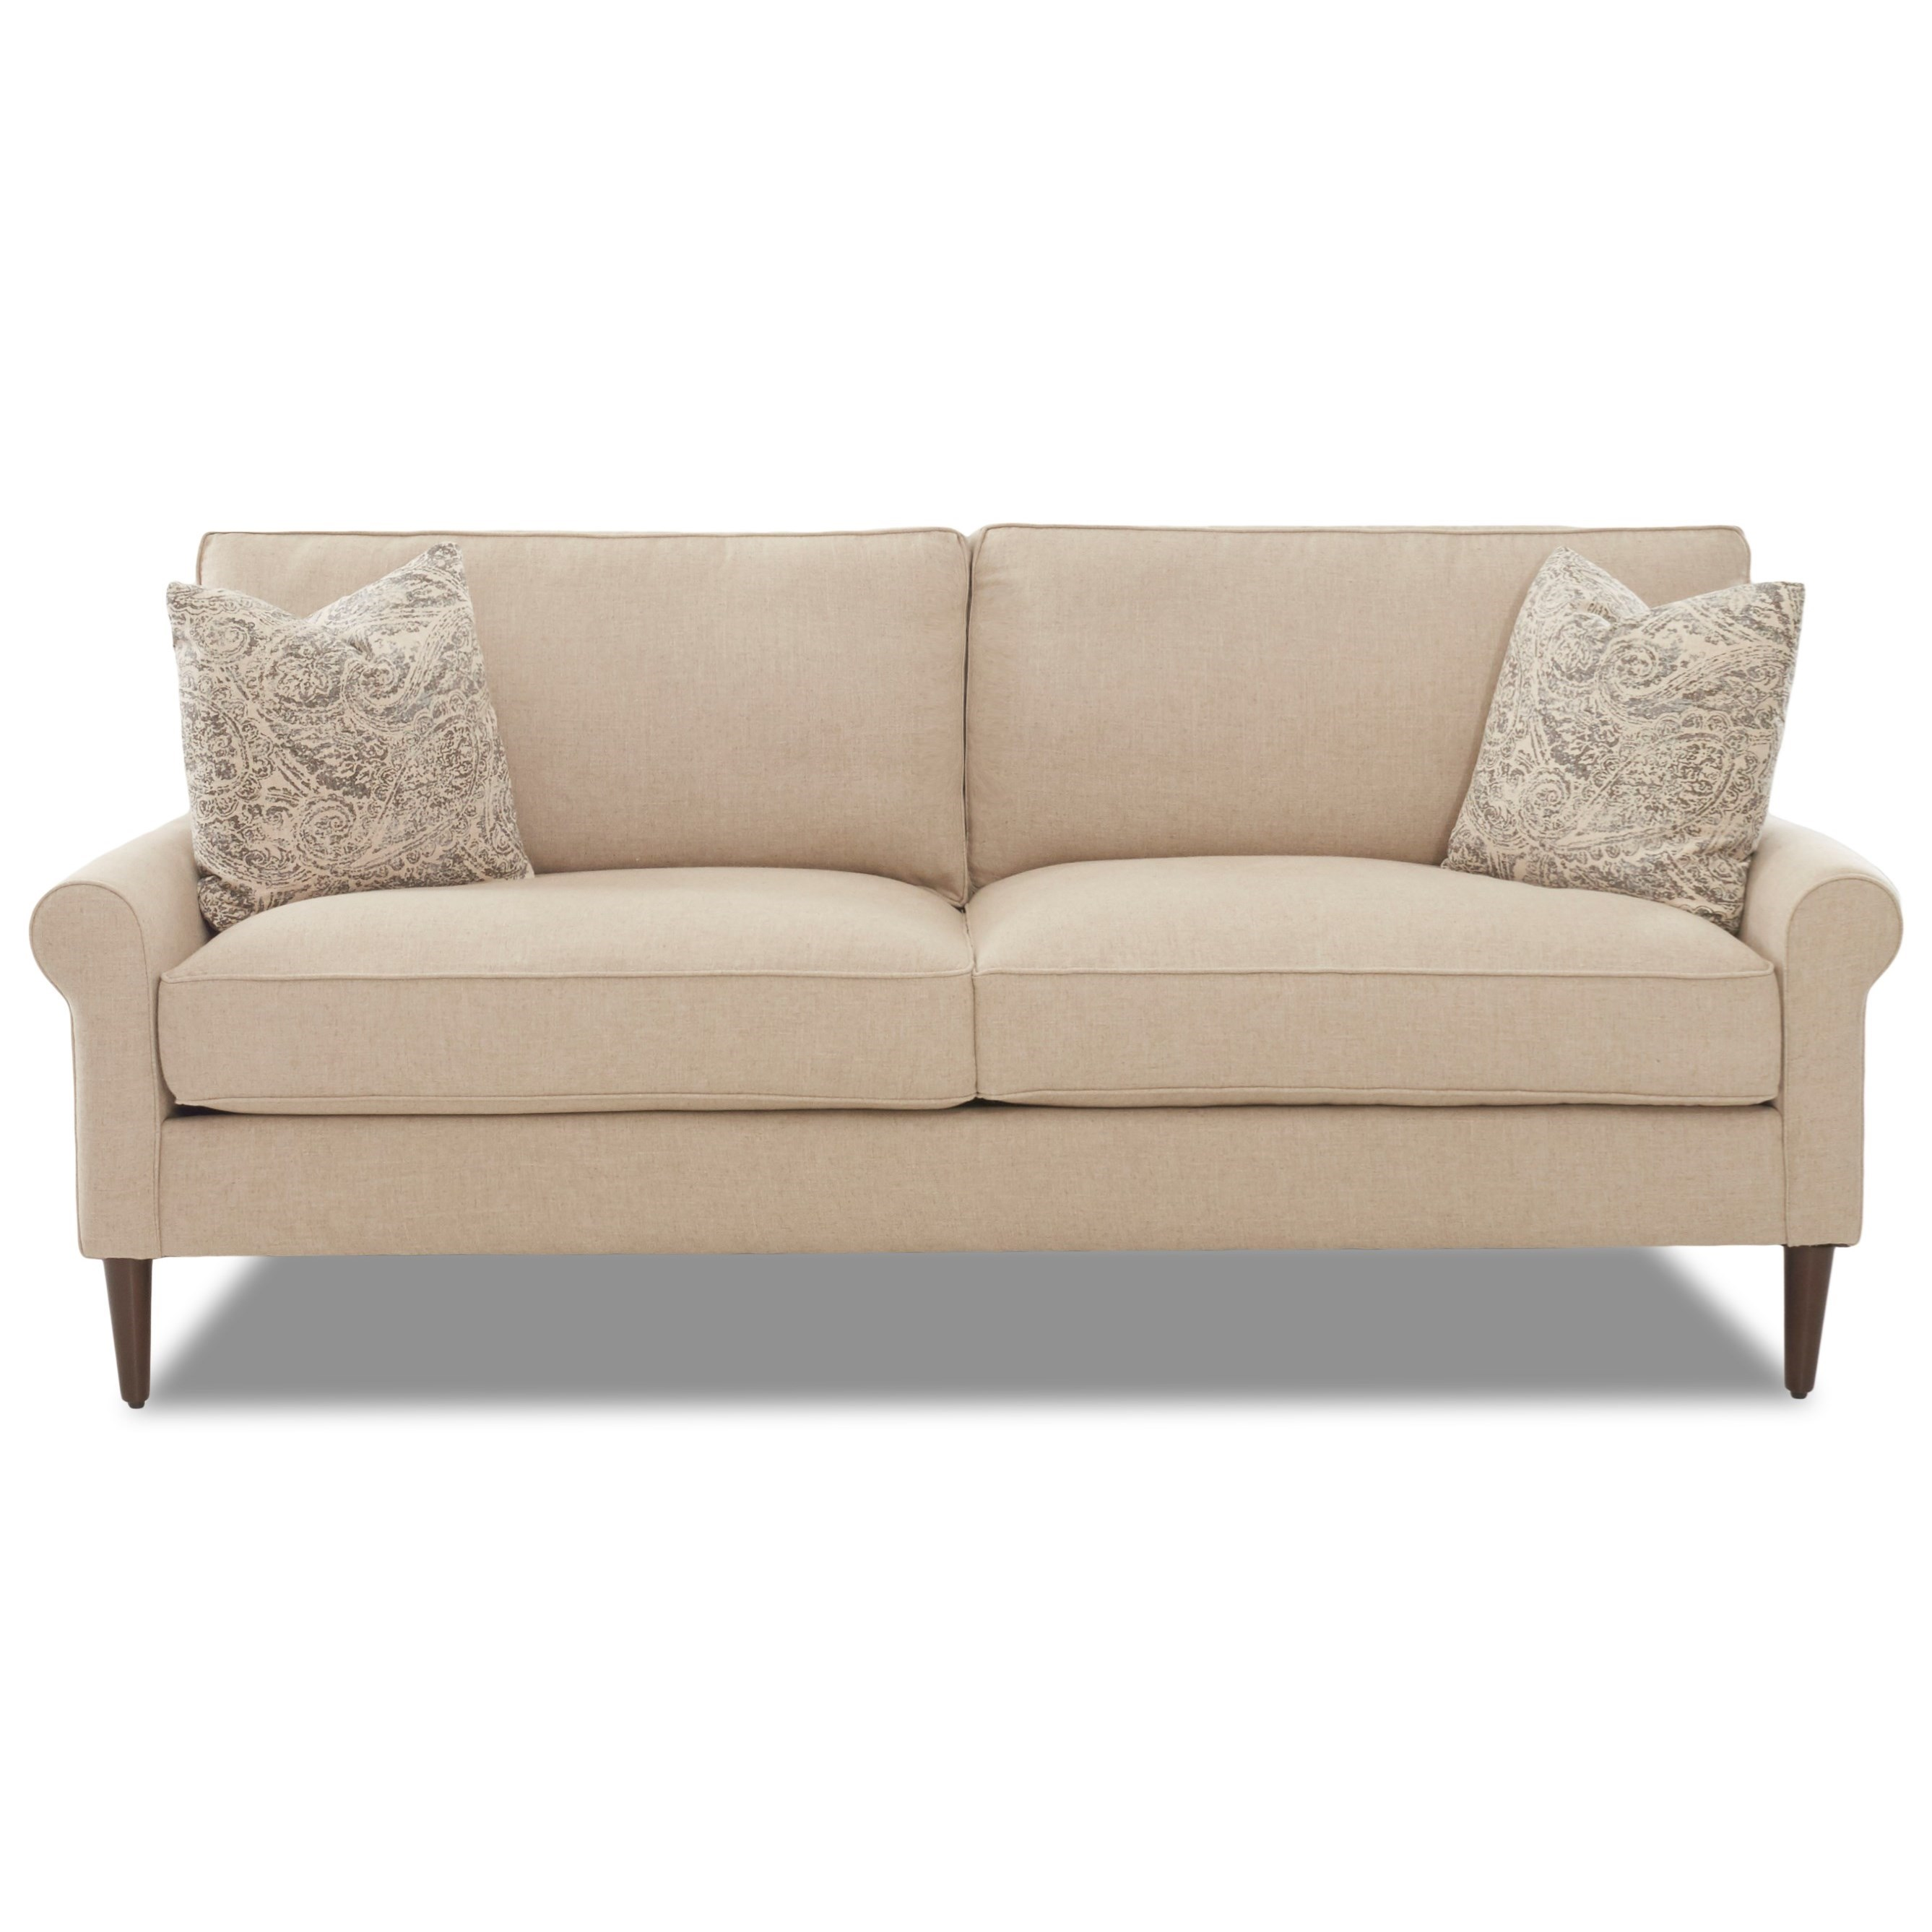 2 over 2 Sofa with Square Tapered Legs